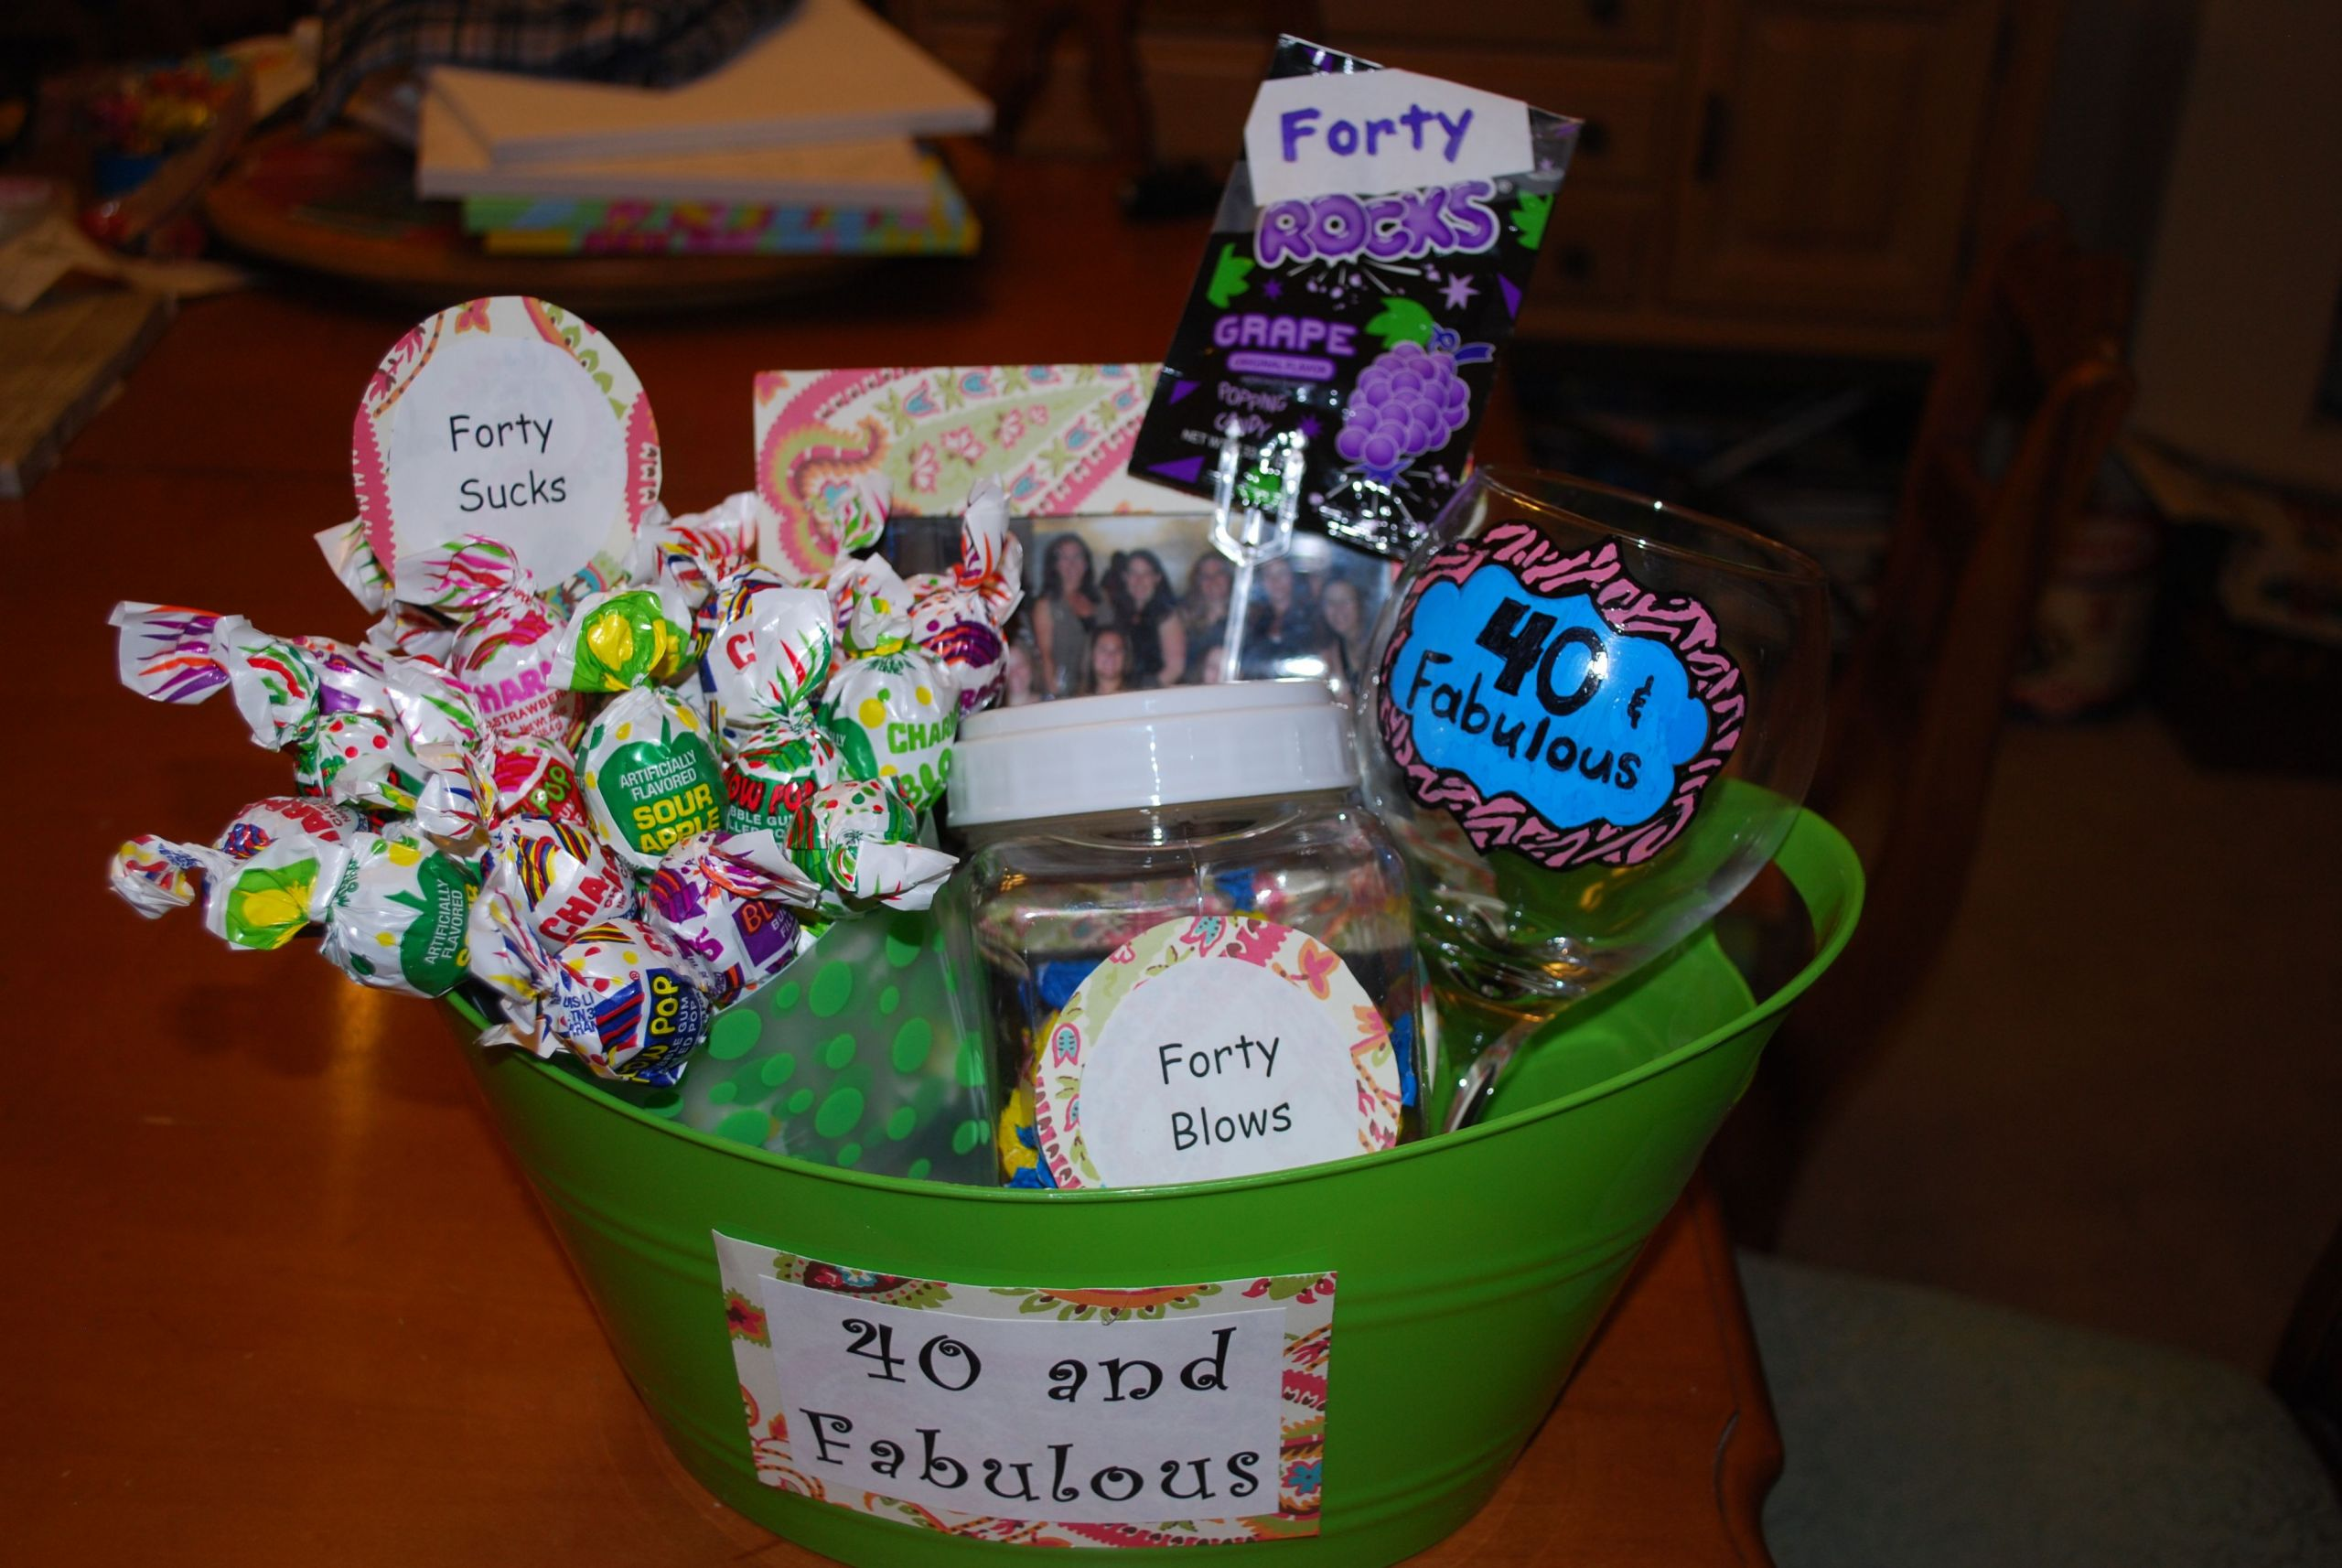 40Th Birthday Gag Gift Ideas  40 birthday ideas t With images